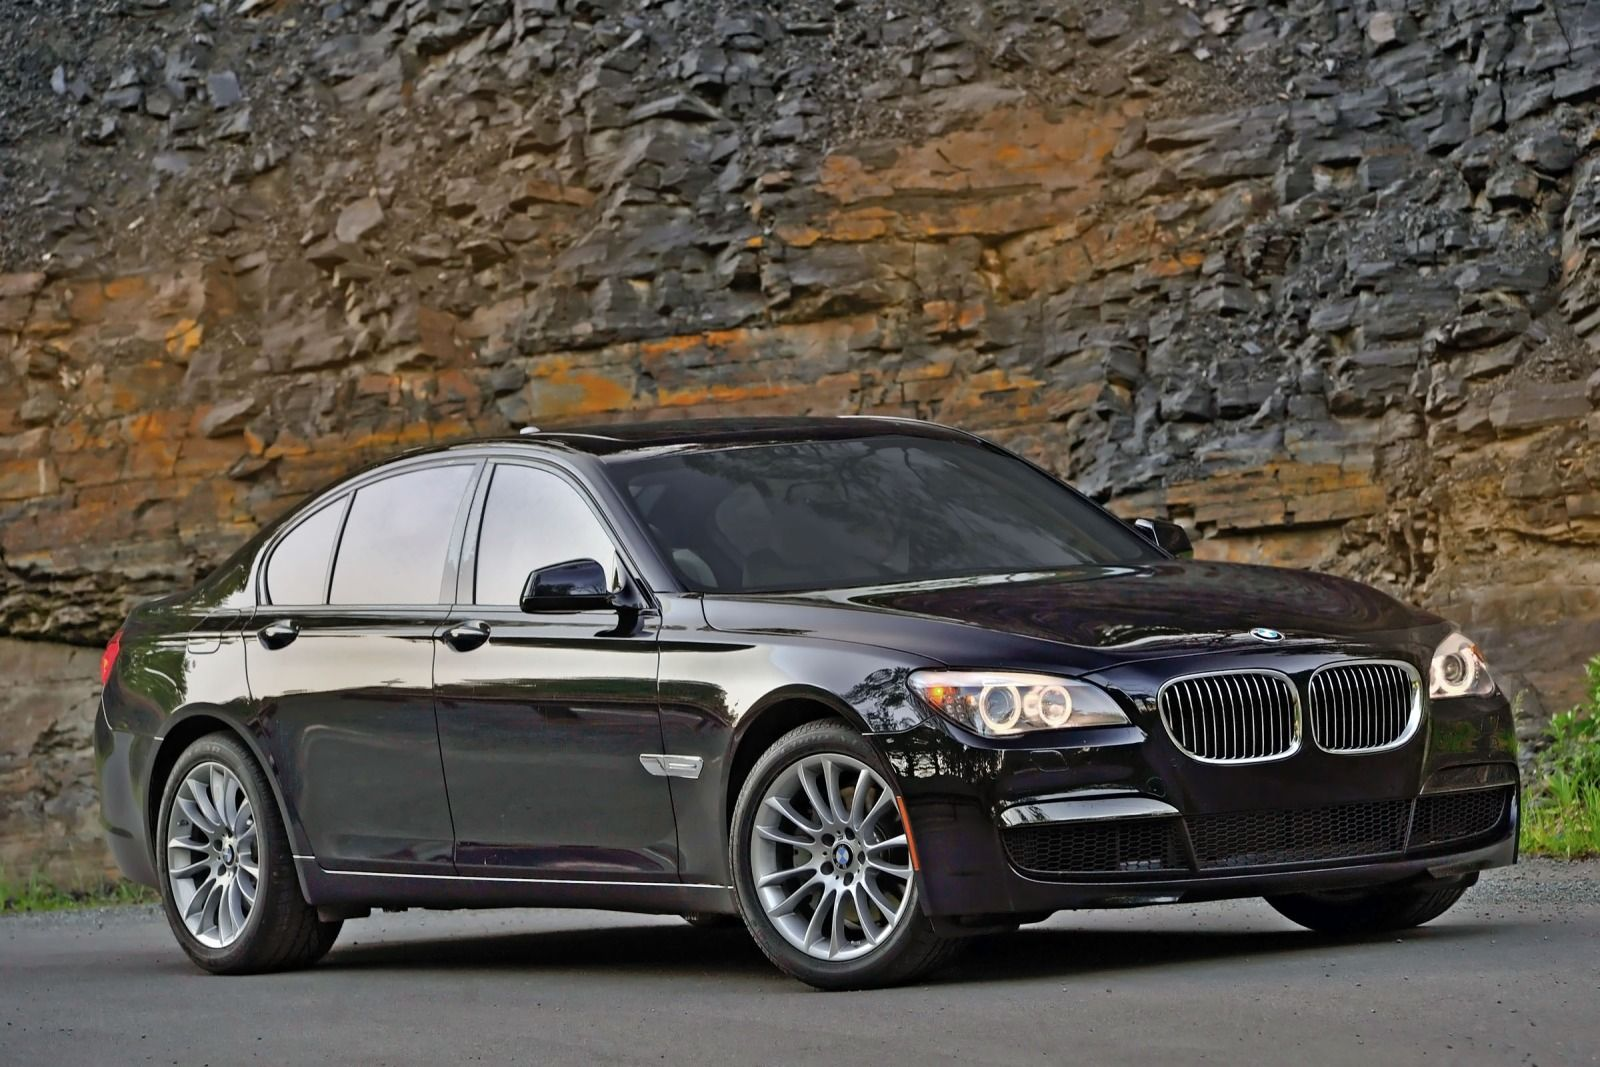 BMW 7 series 740i 2012 photo - 4